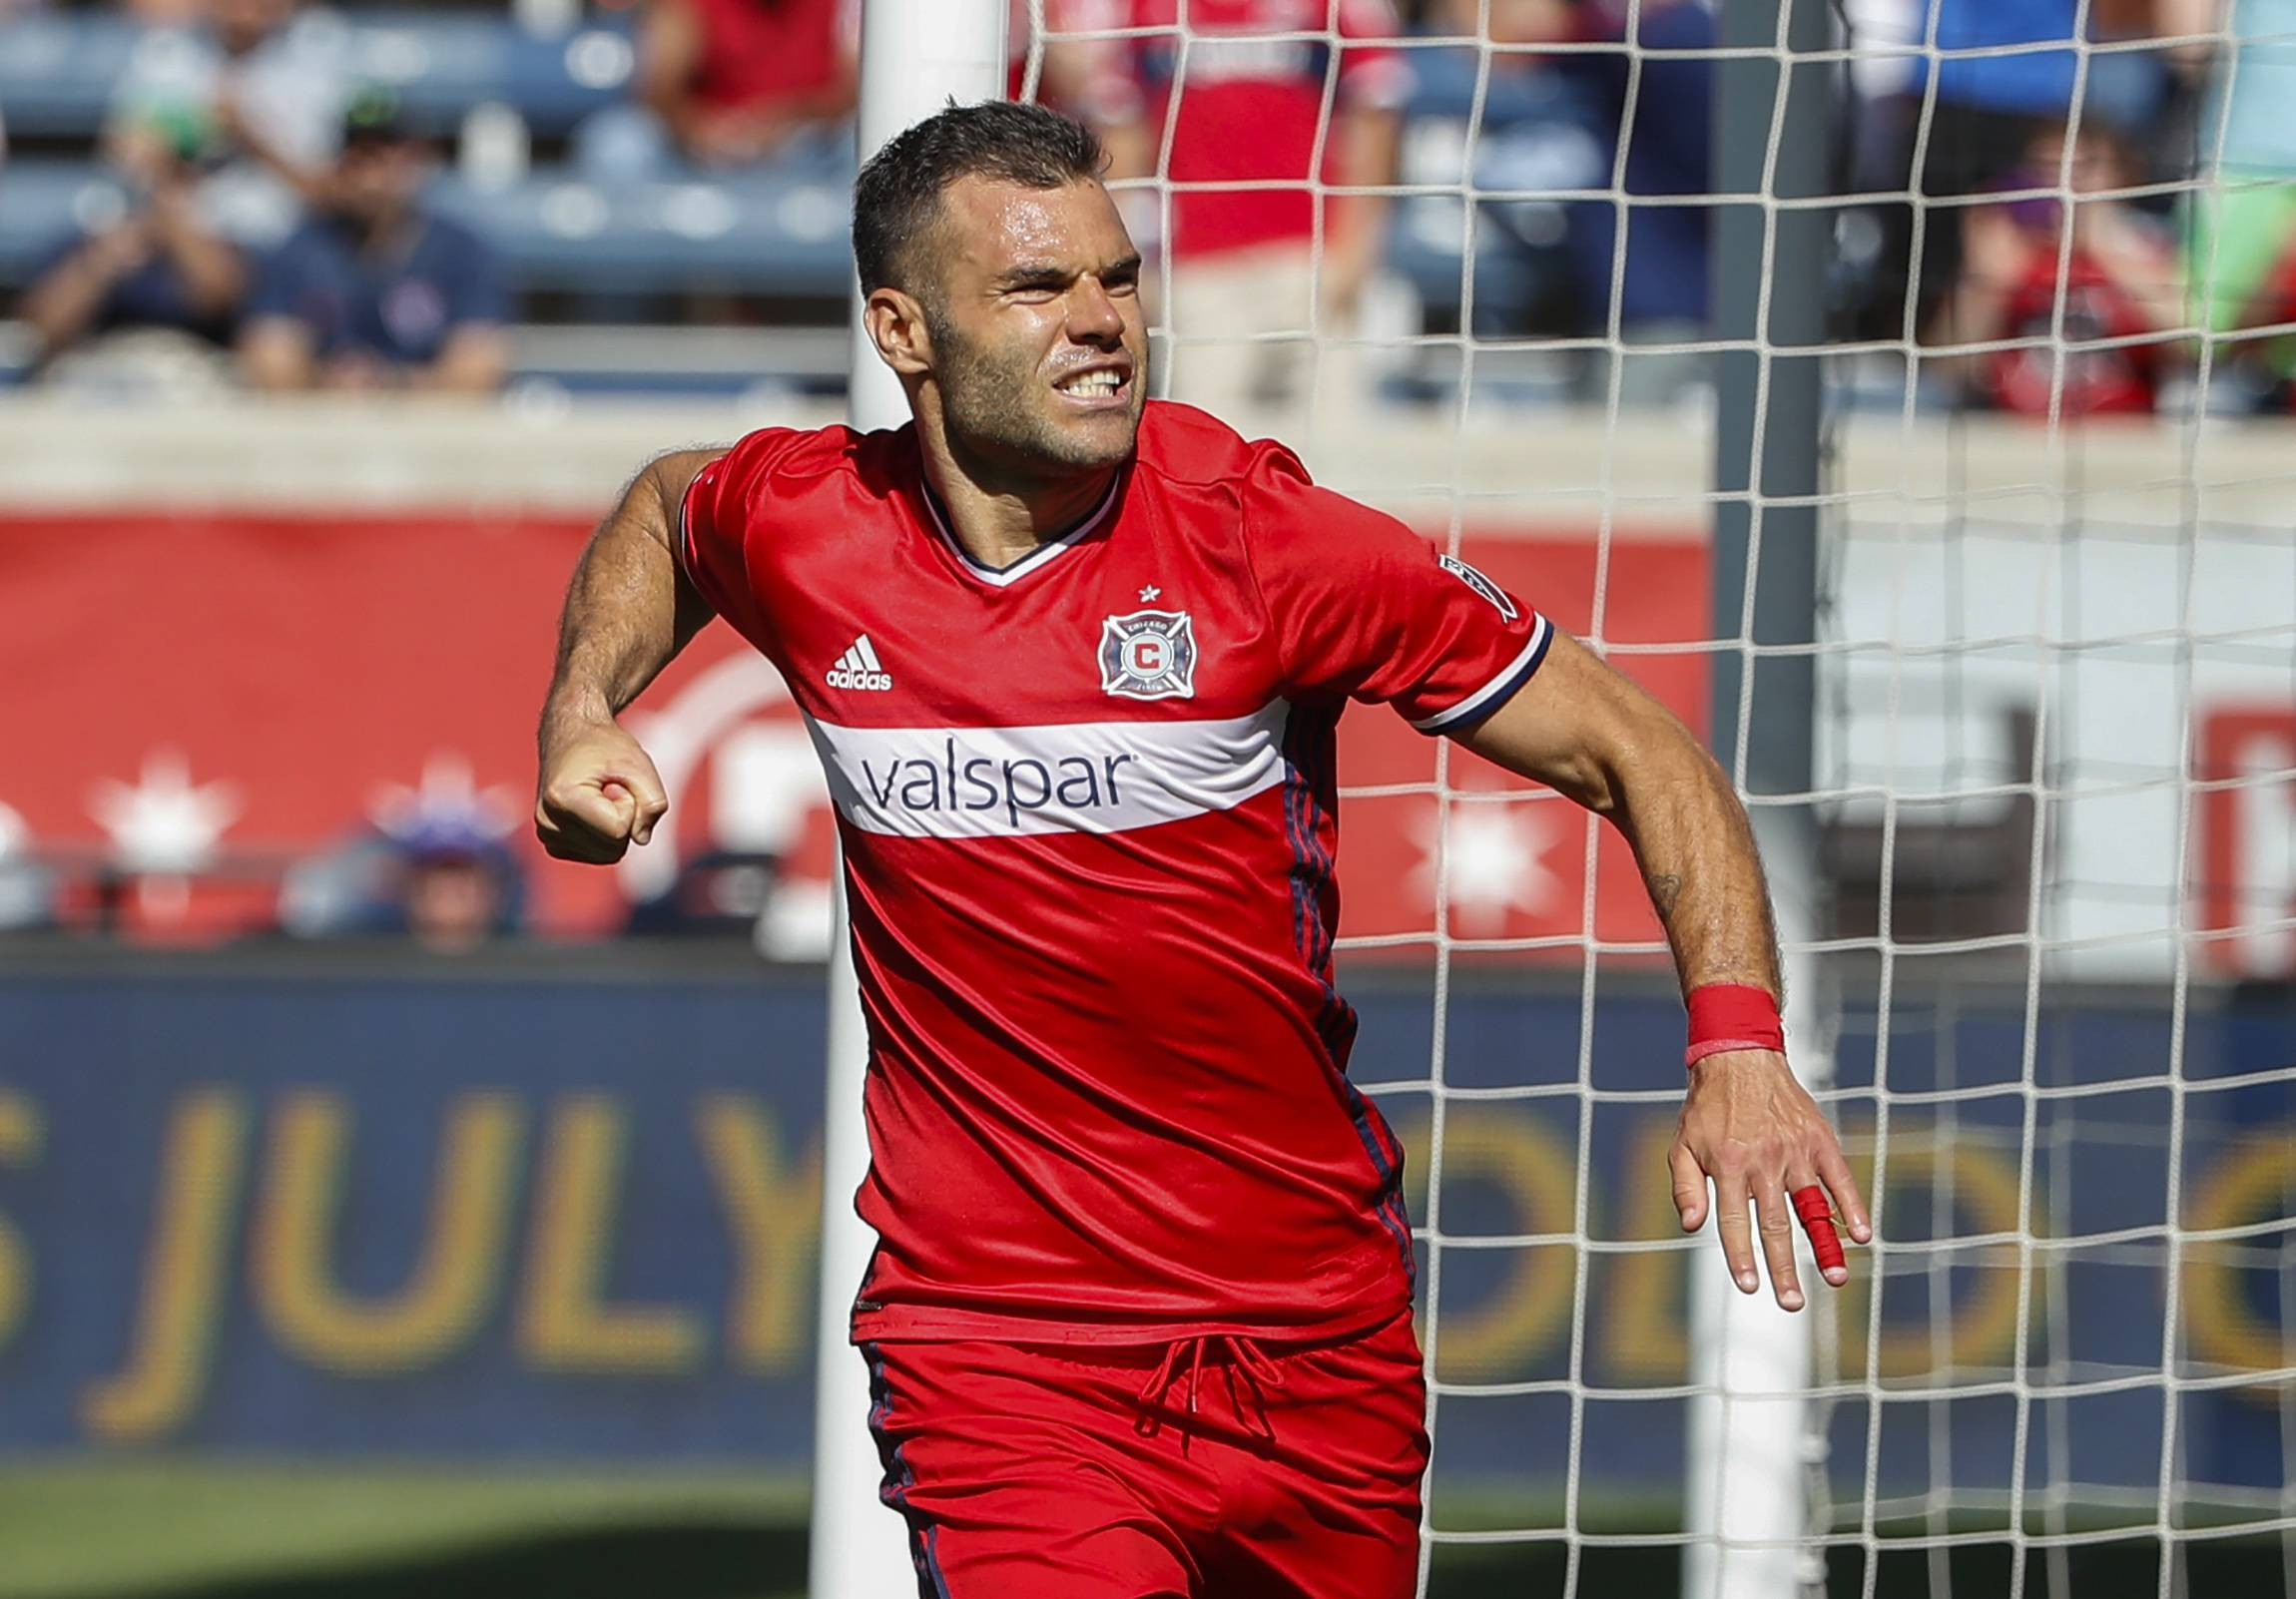 Chicago Fire forward Nemanja Nikolic celebrates after scoring on a penalty kick against Atlanta United on June 10. As the MLS all-stars arrive in Chicago for Wednesday's game, we're reminded of what their presence means.